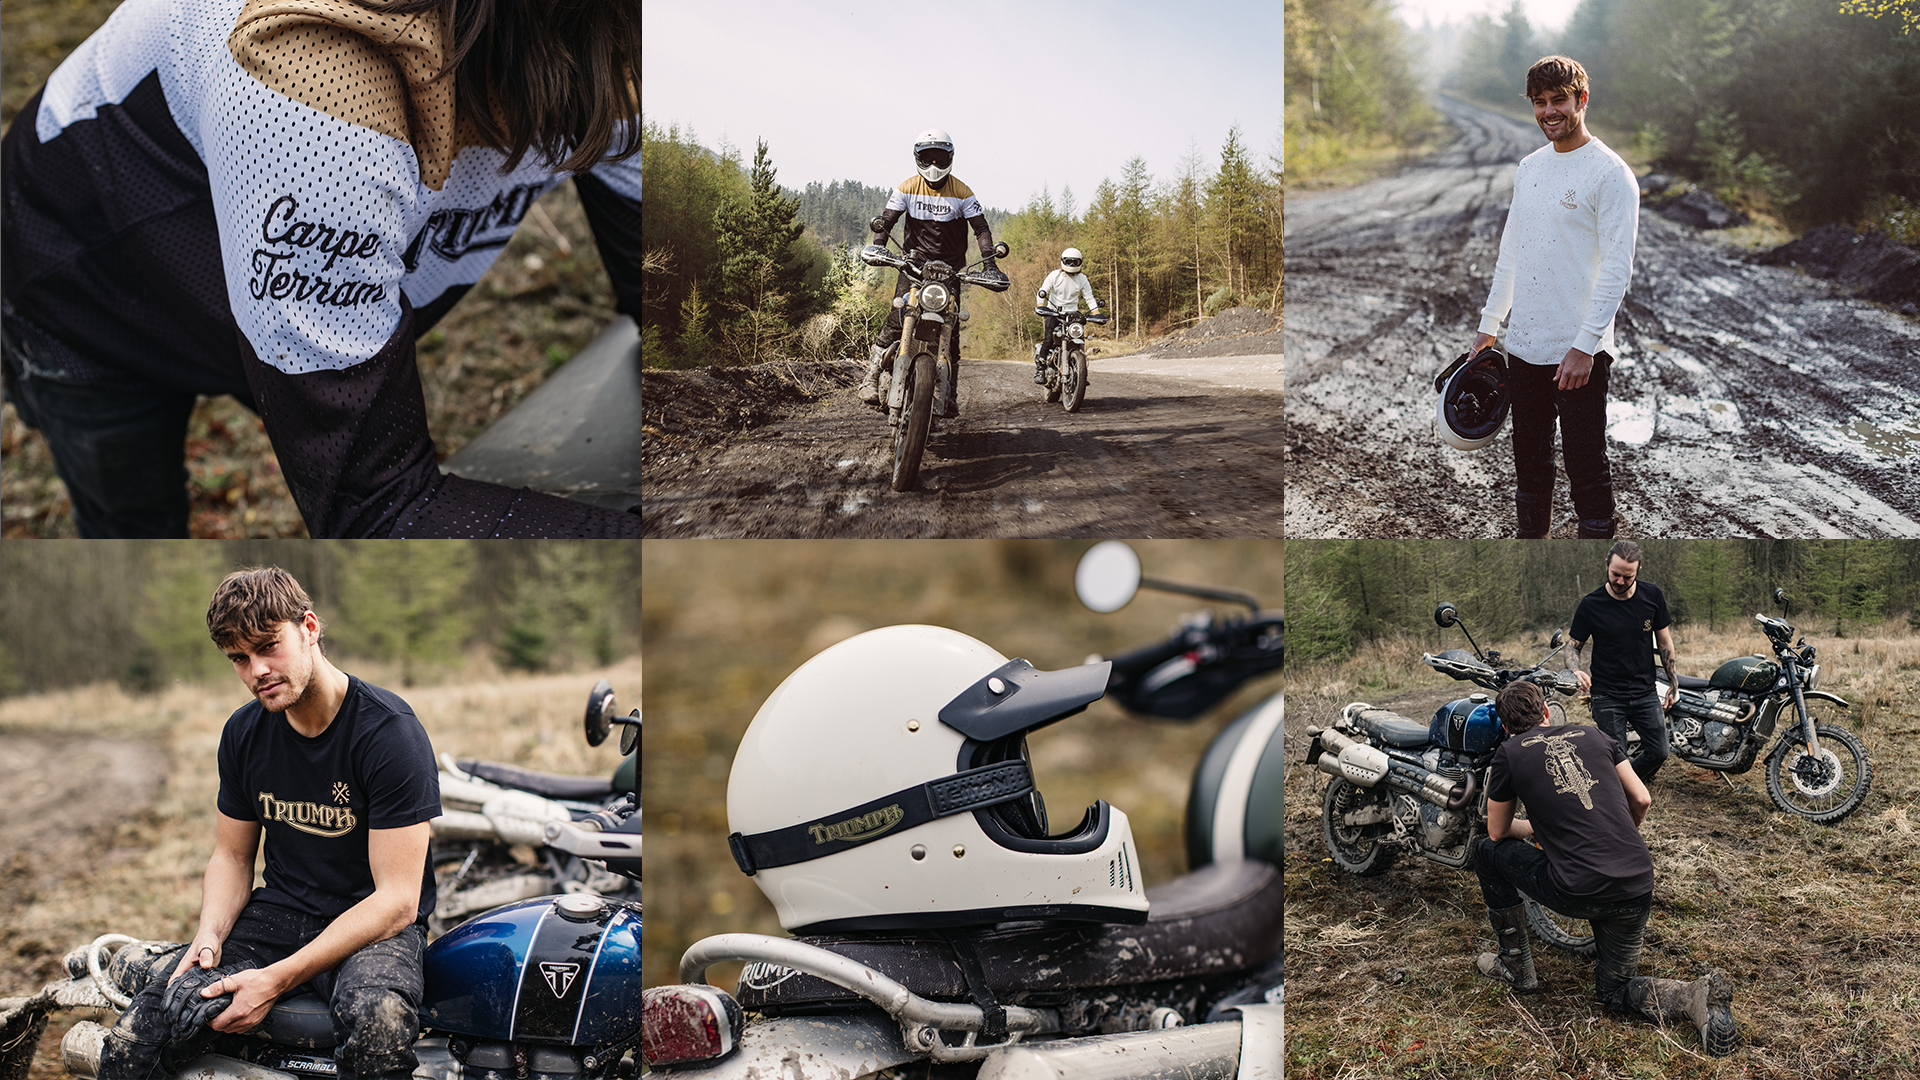 Triumph and Bike Shed Collaboration inspired by the Triumph Scrambler 1200